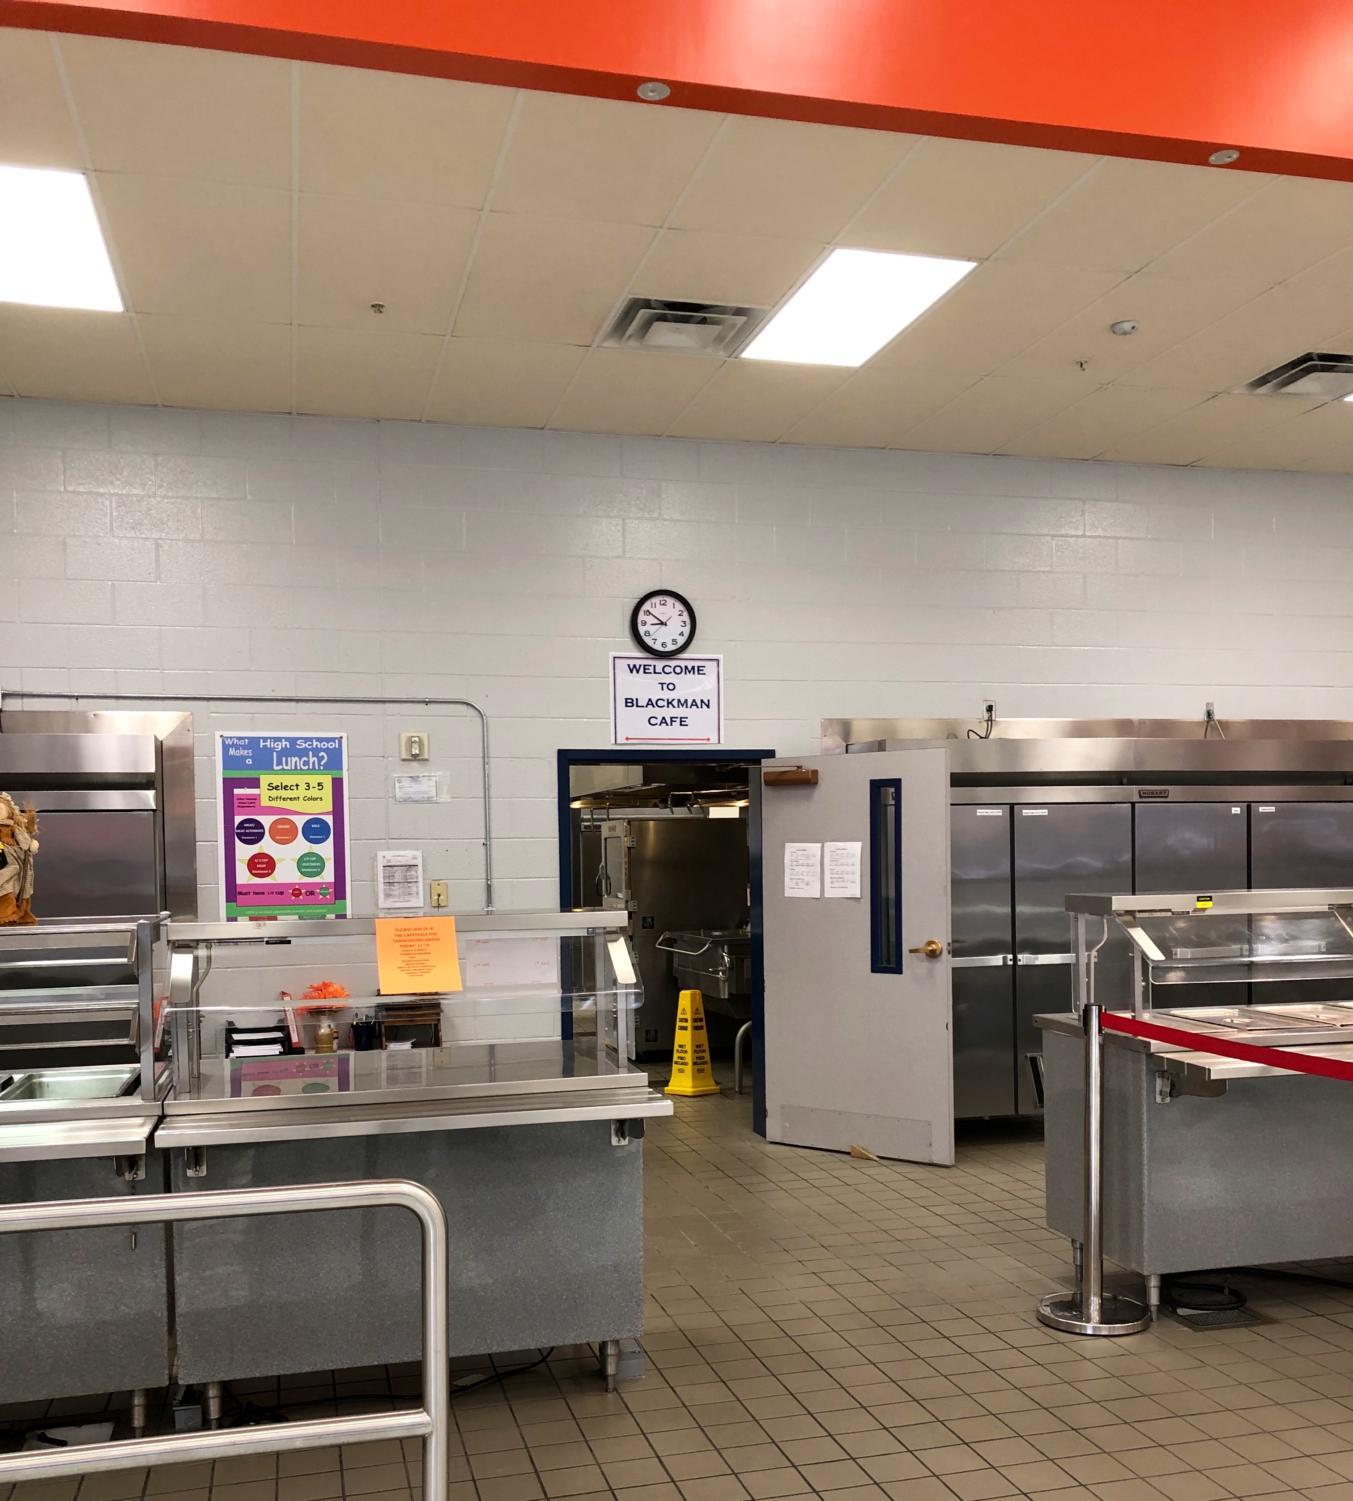 This+is+the+headquarters+for+the+lunch+ladies+to+cook+all+of+the+food+they+serve+for+students.